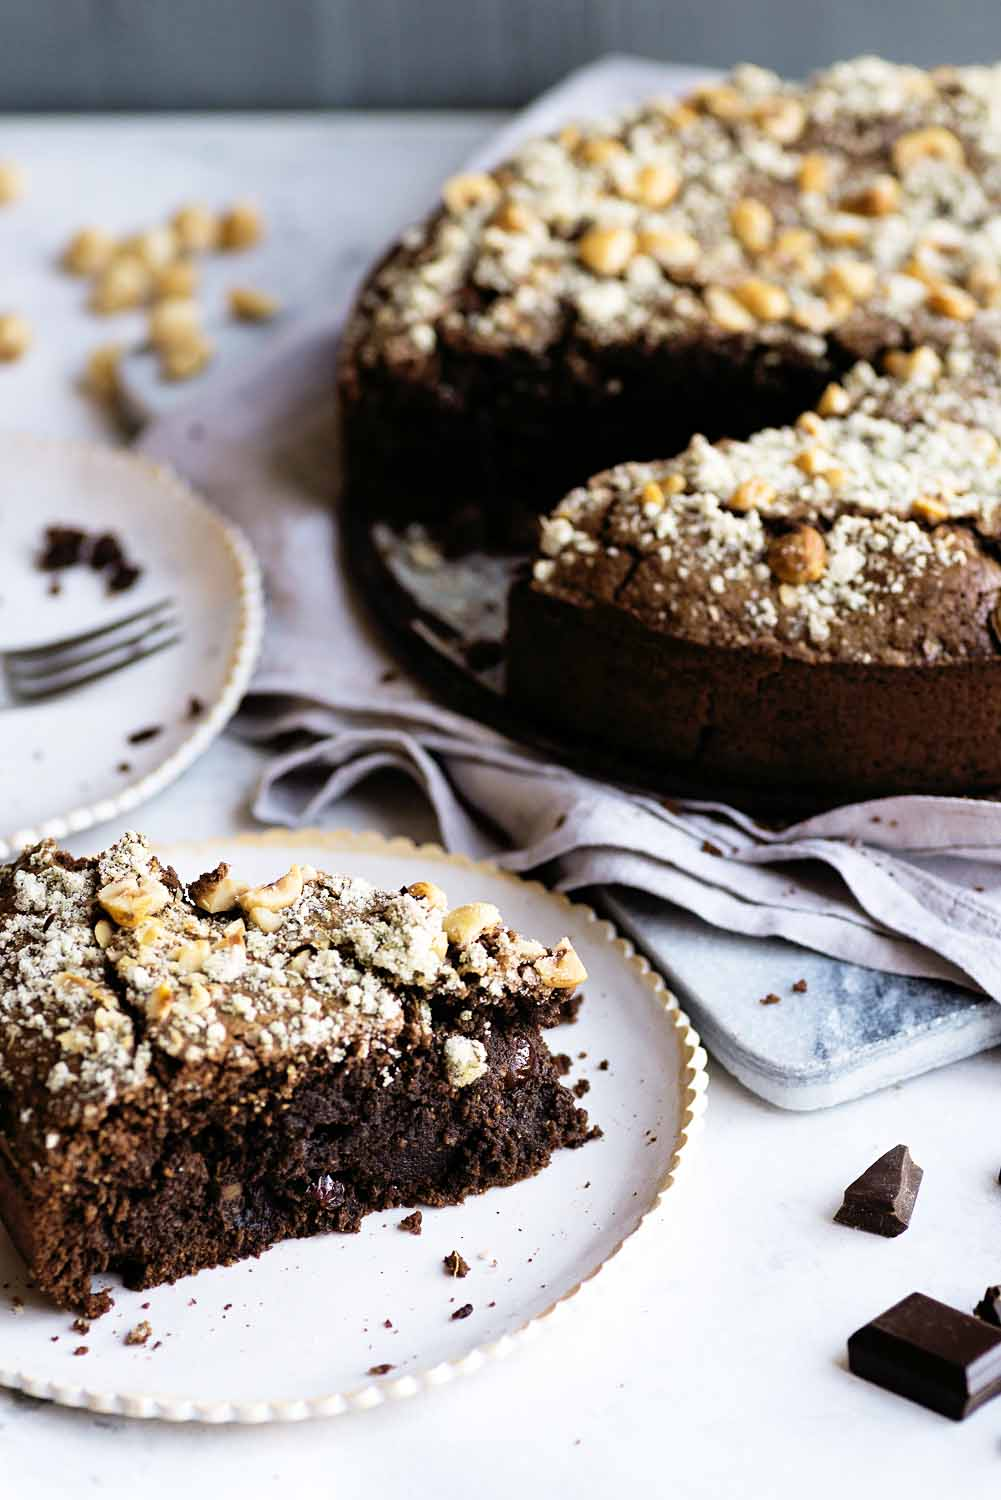 Chocolate and Hazelnut Cake with Rum Raisins and Rosemary Sugar by Nigel Slater